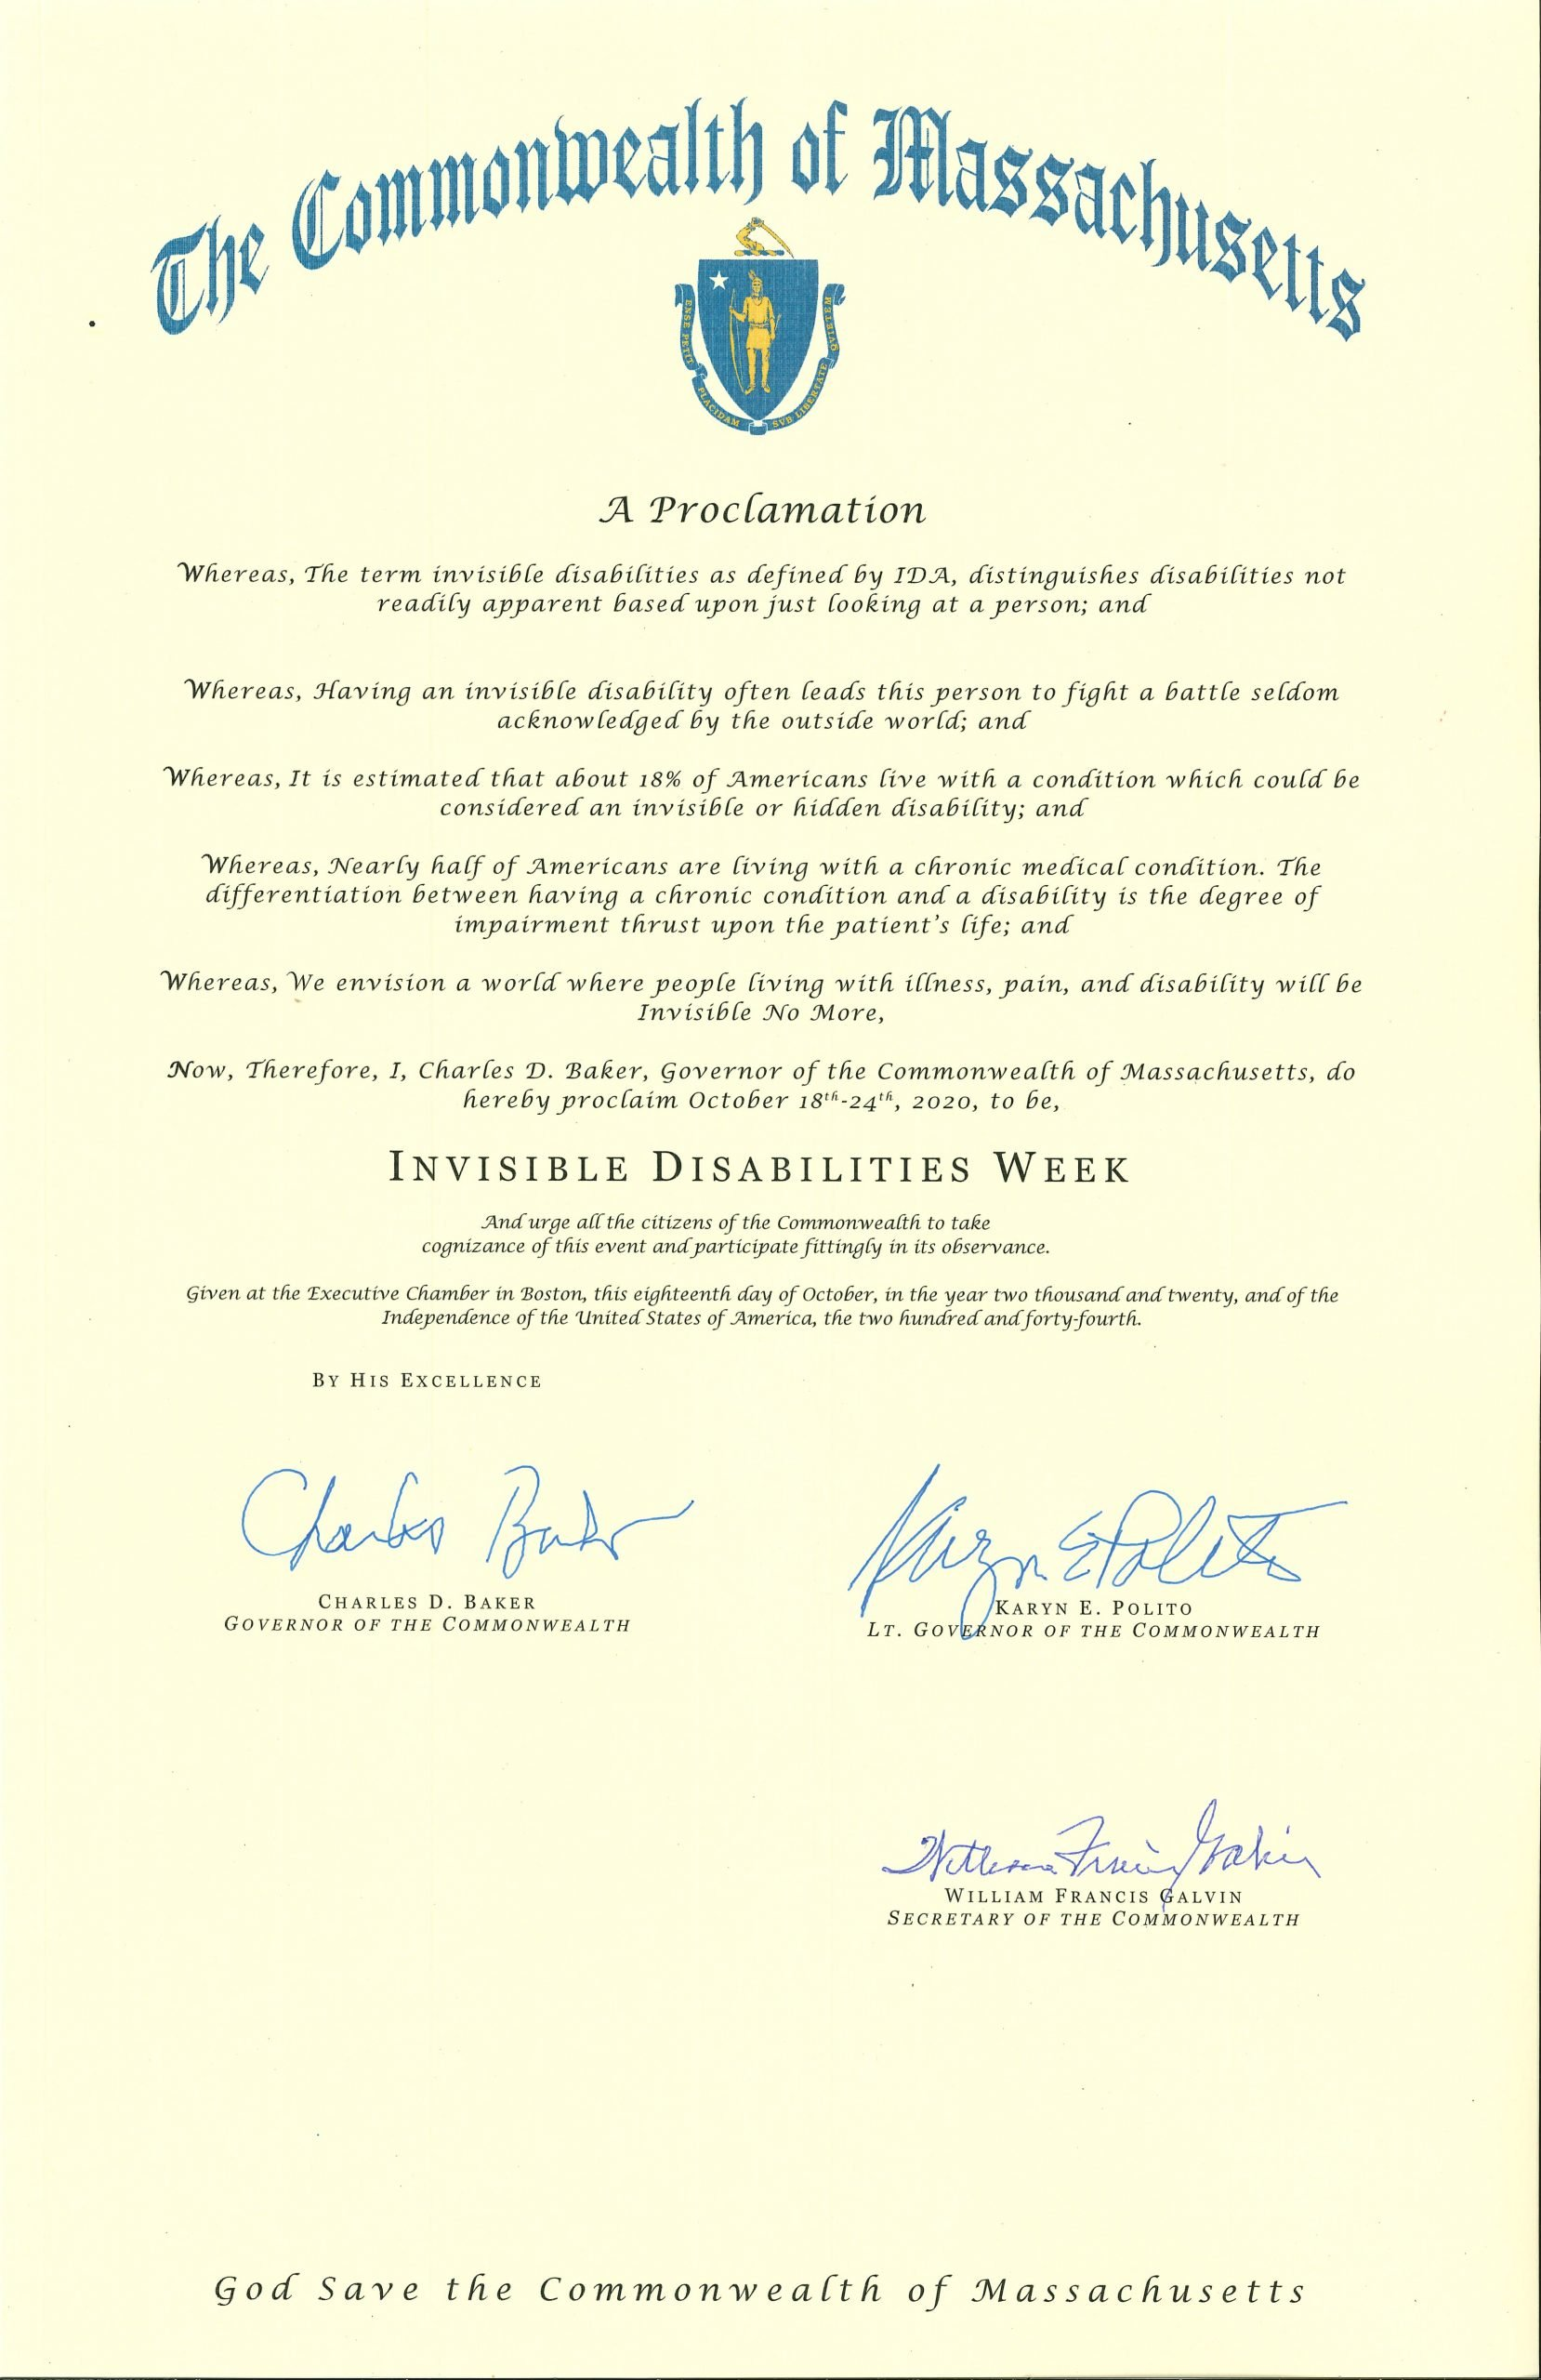 Massachusetts 2020 Invisible Disabilities Week Proclamation -Invisible Disabilities Association